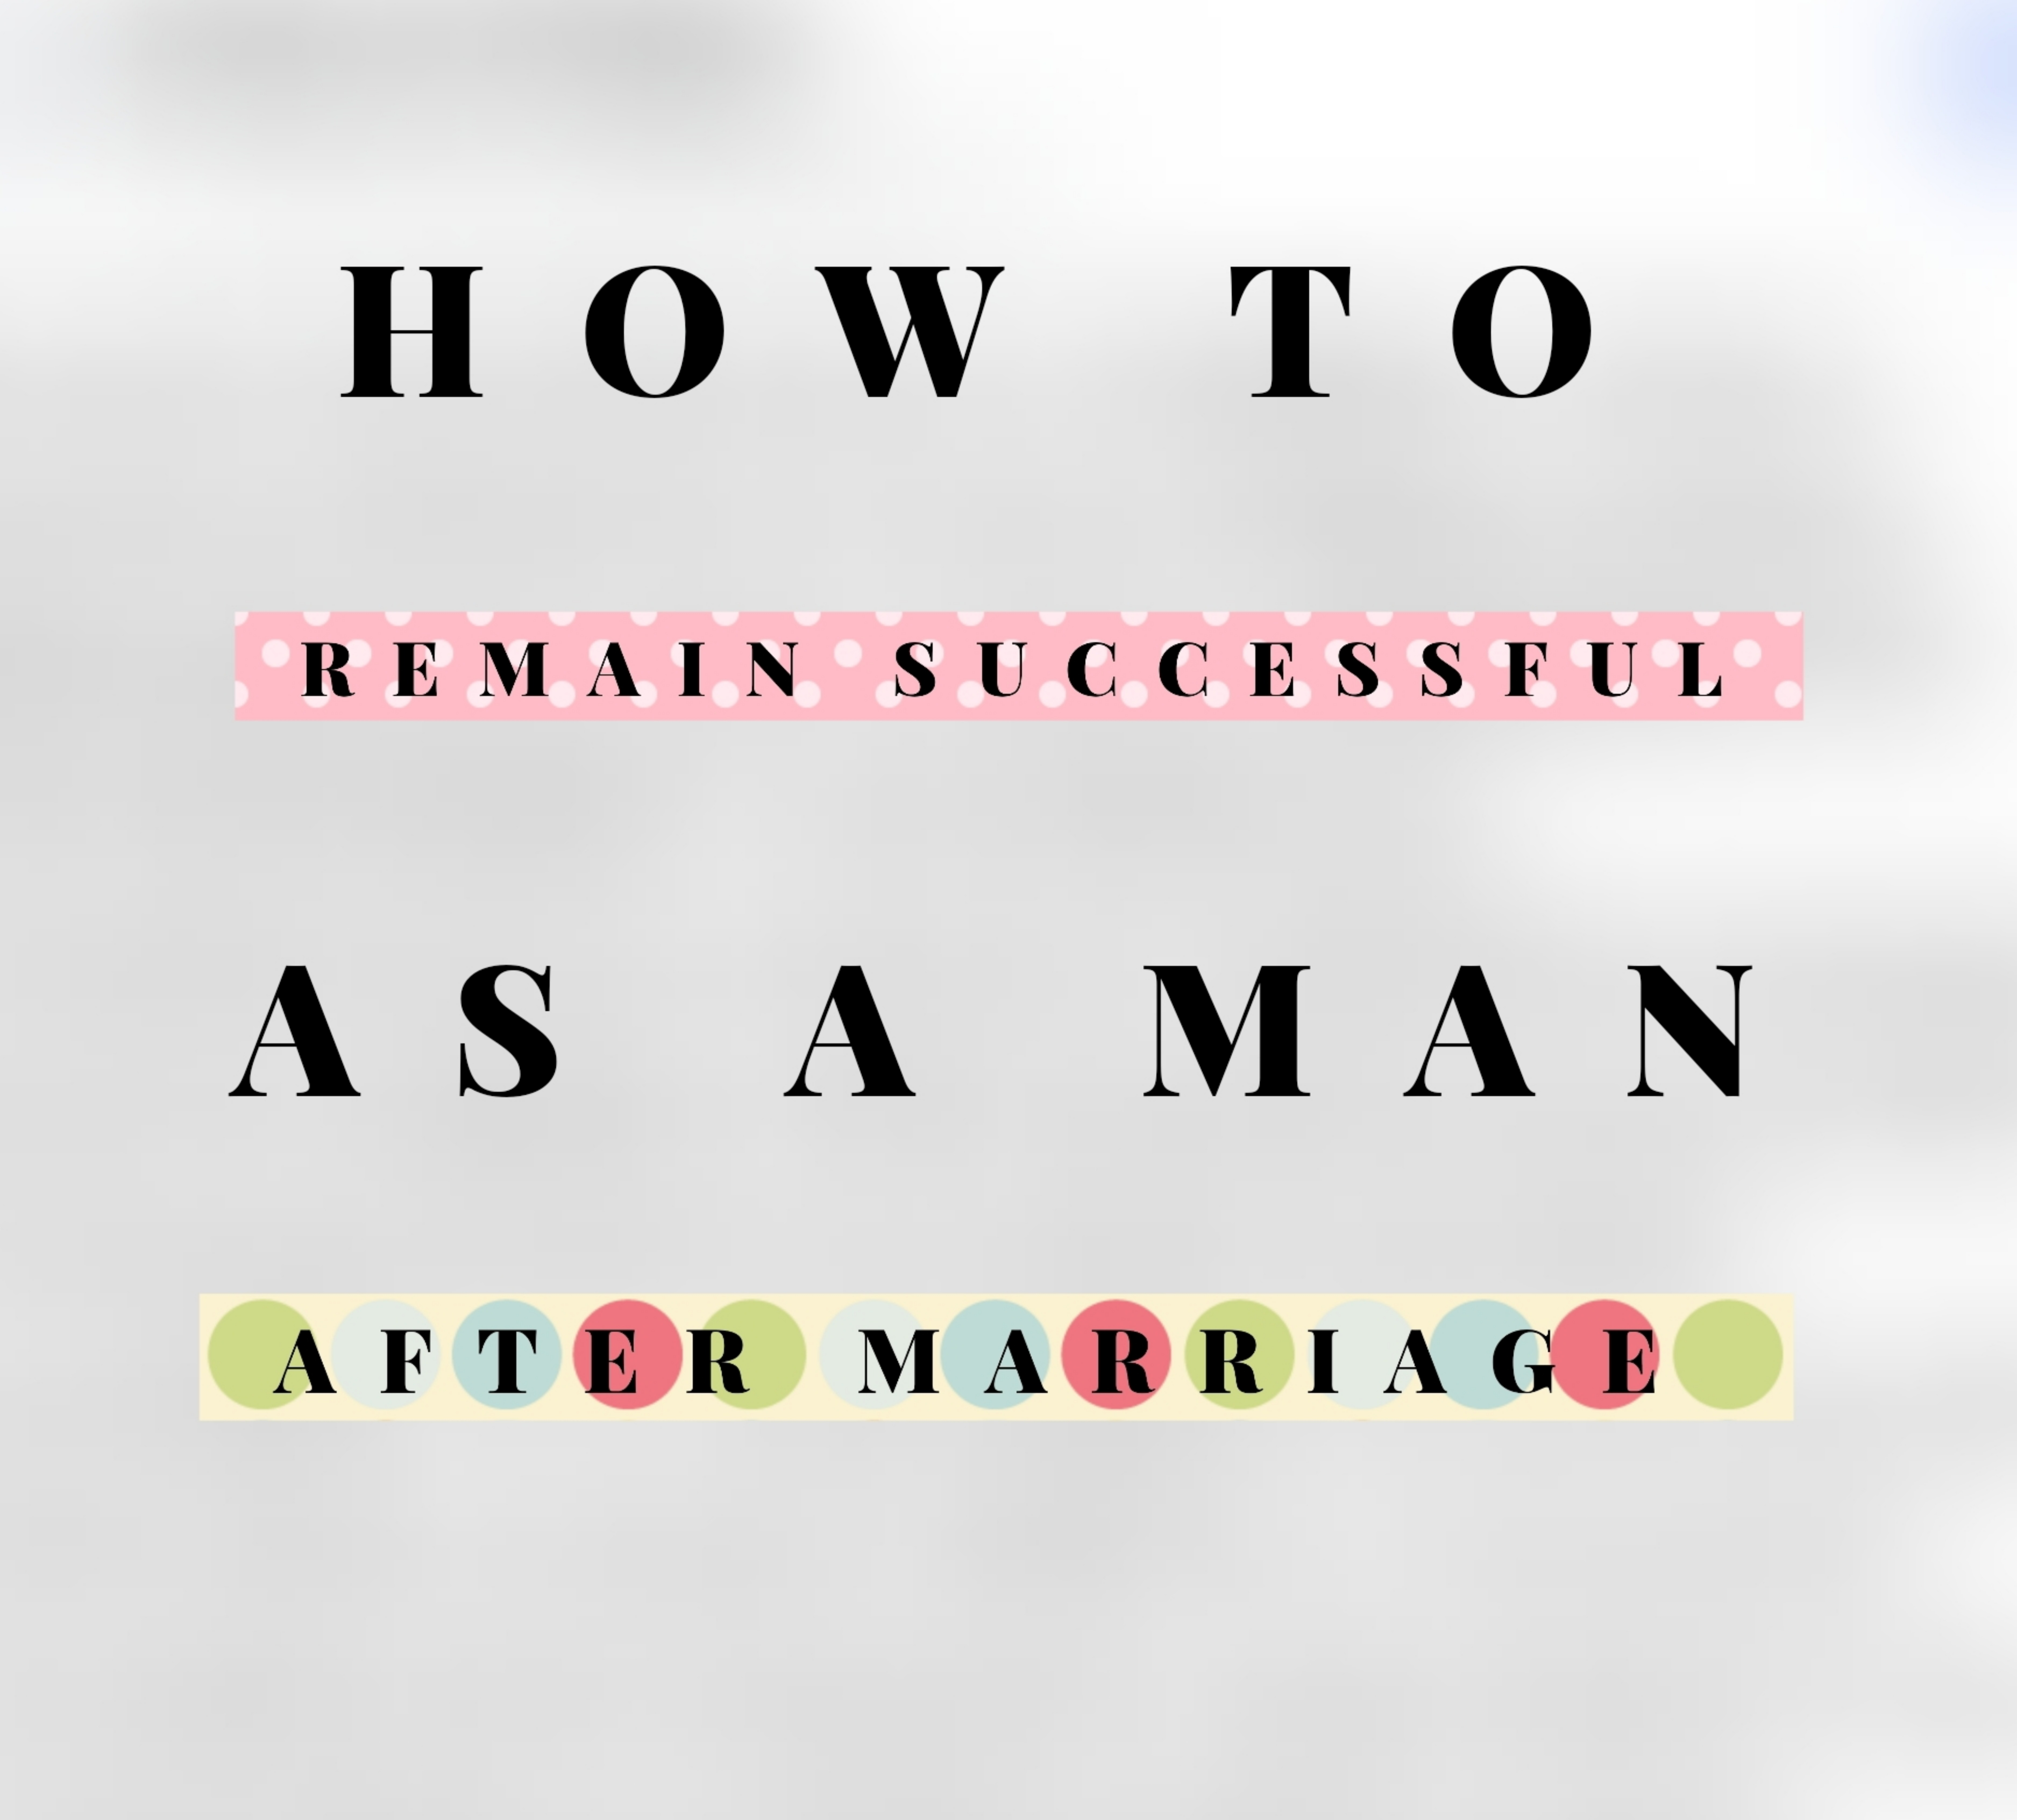 How To Avoid Being Unsucessful As a Married Man